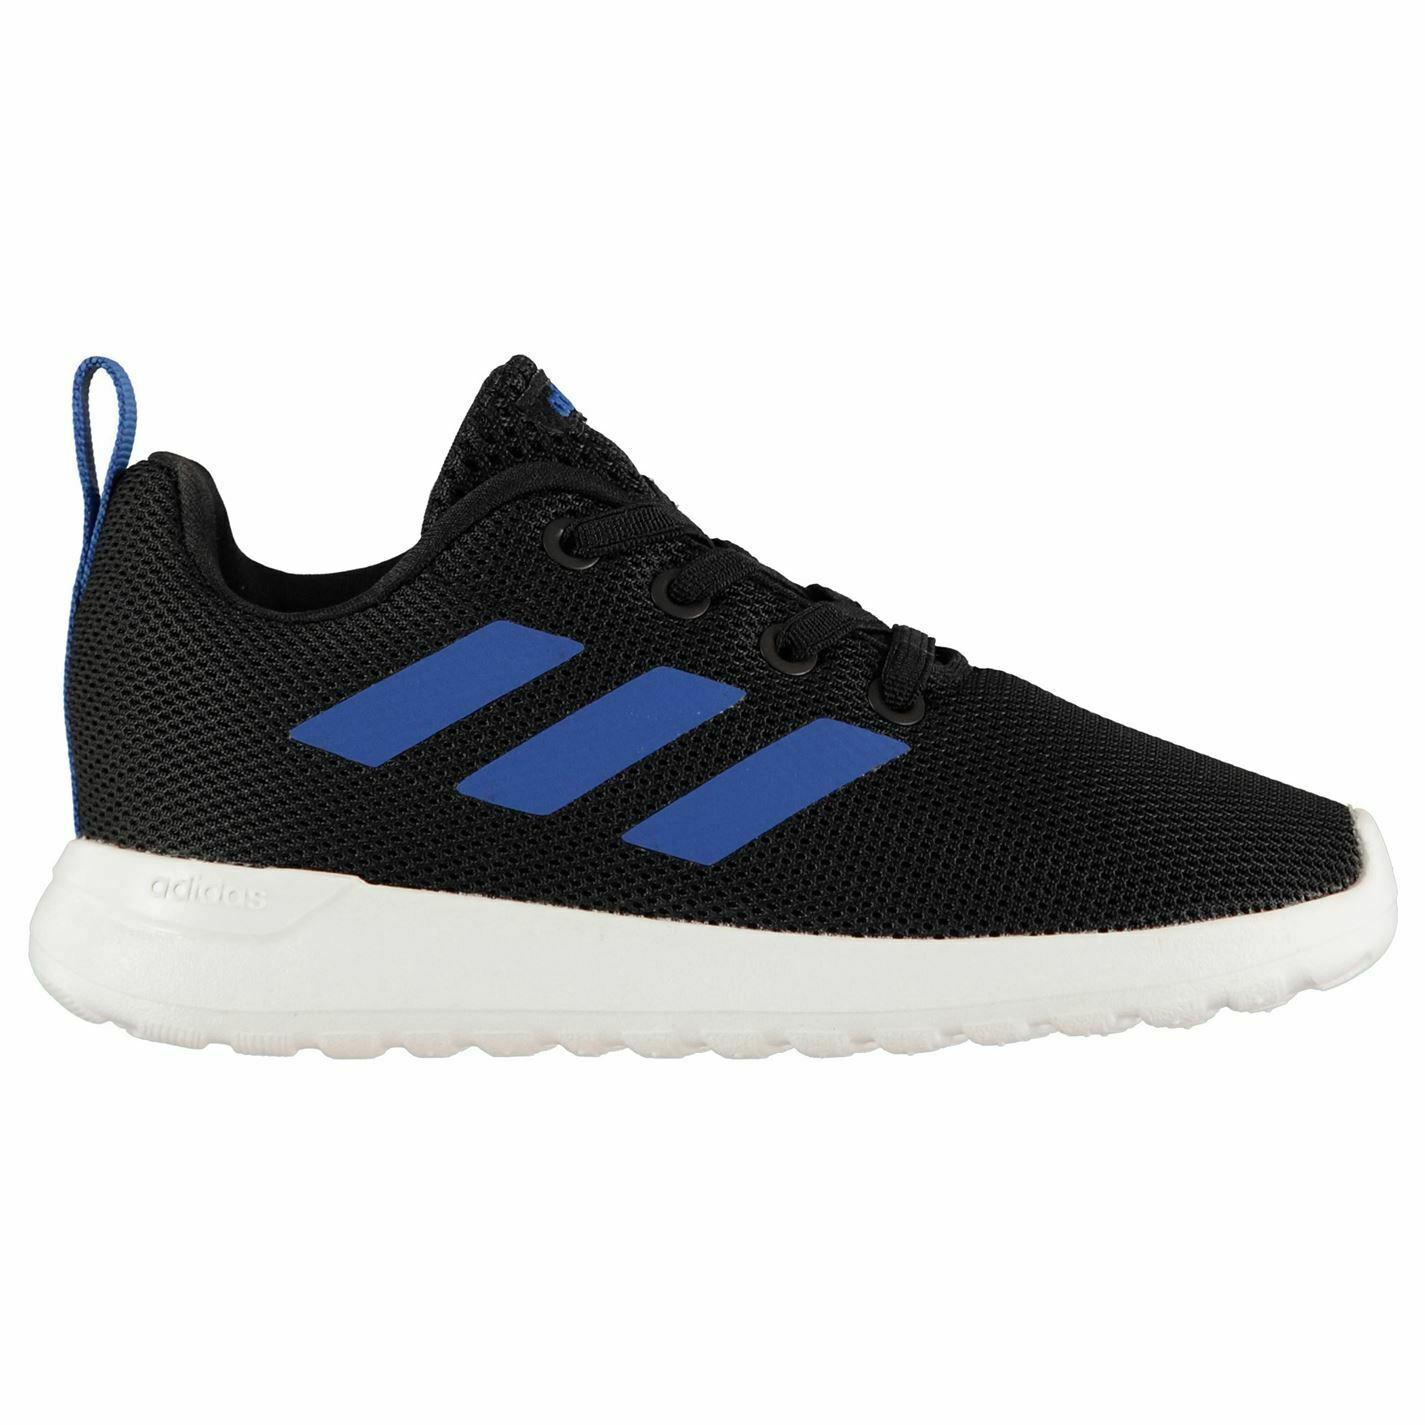 Adidas Kids Lace Up  Running Sports shoes Trainers Pumps Sneakers  big savings